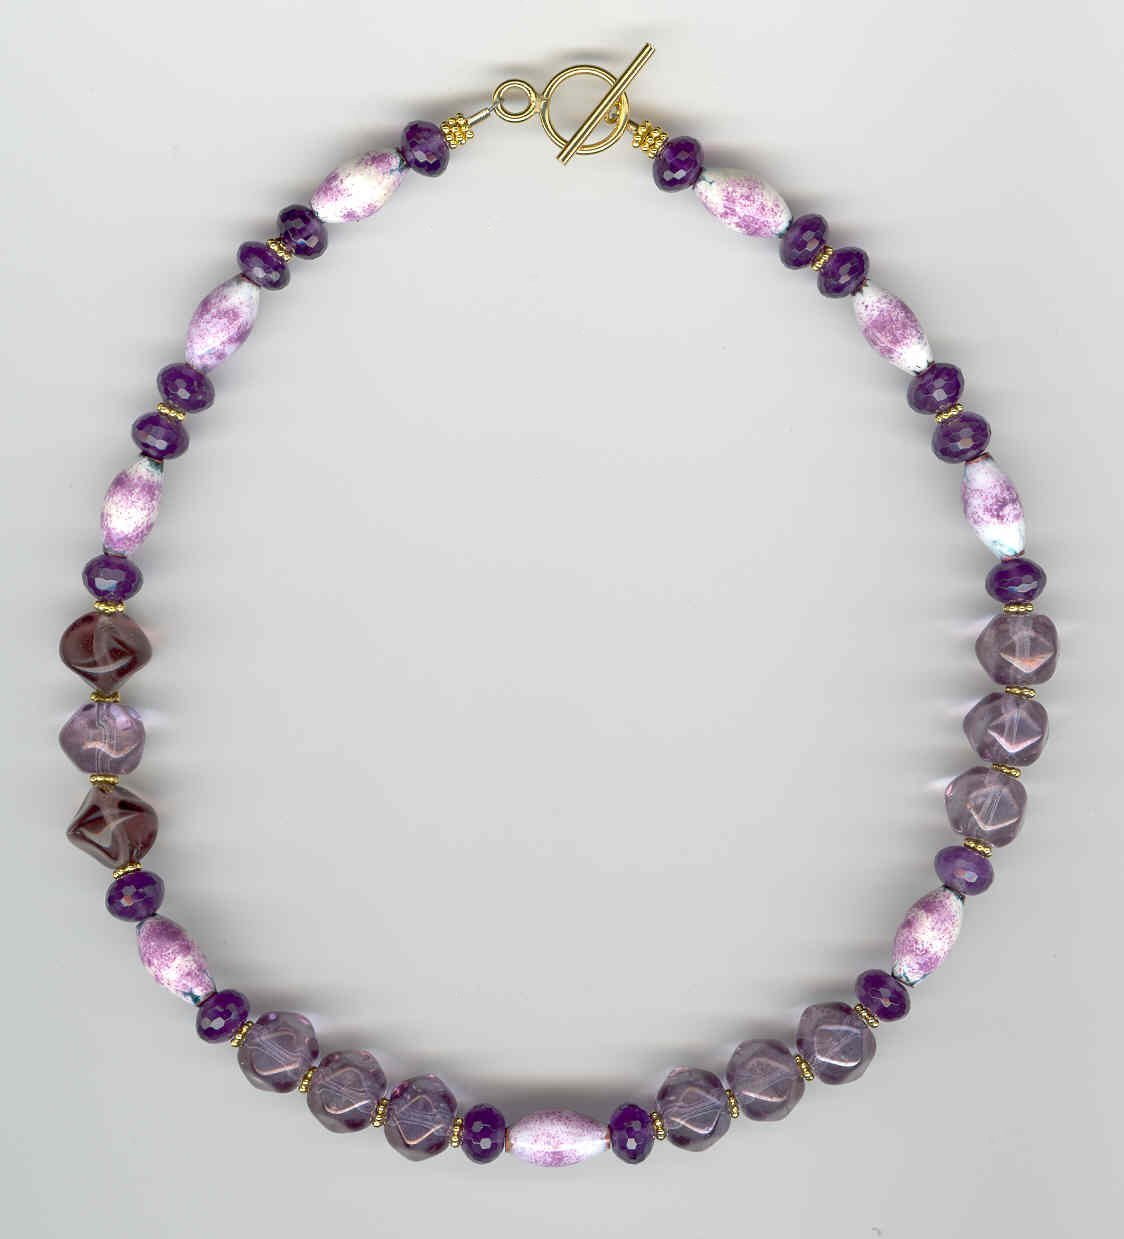 Volcanic Ash and Amethyst Choker - UniqueCherie